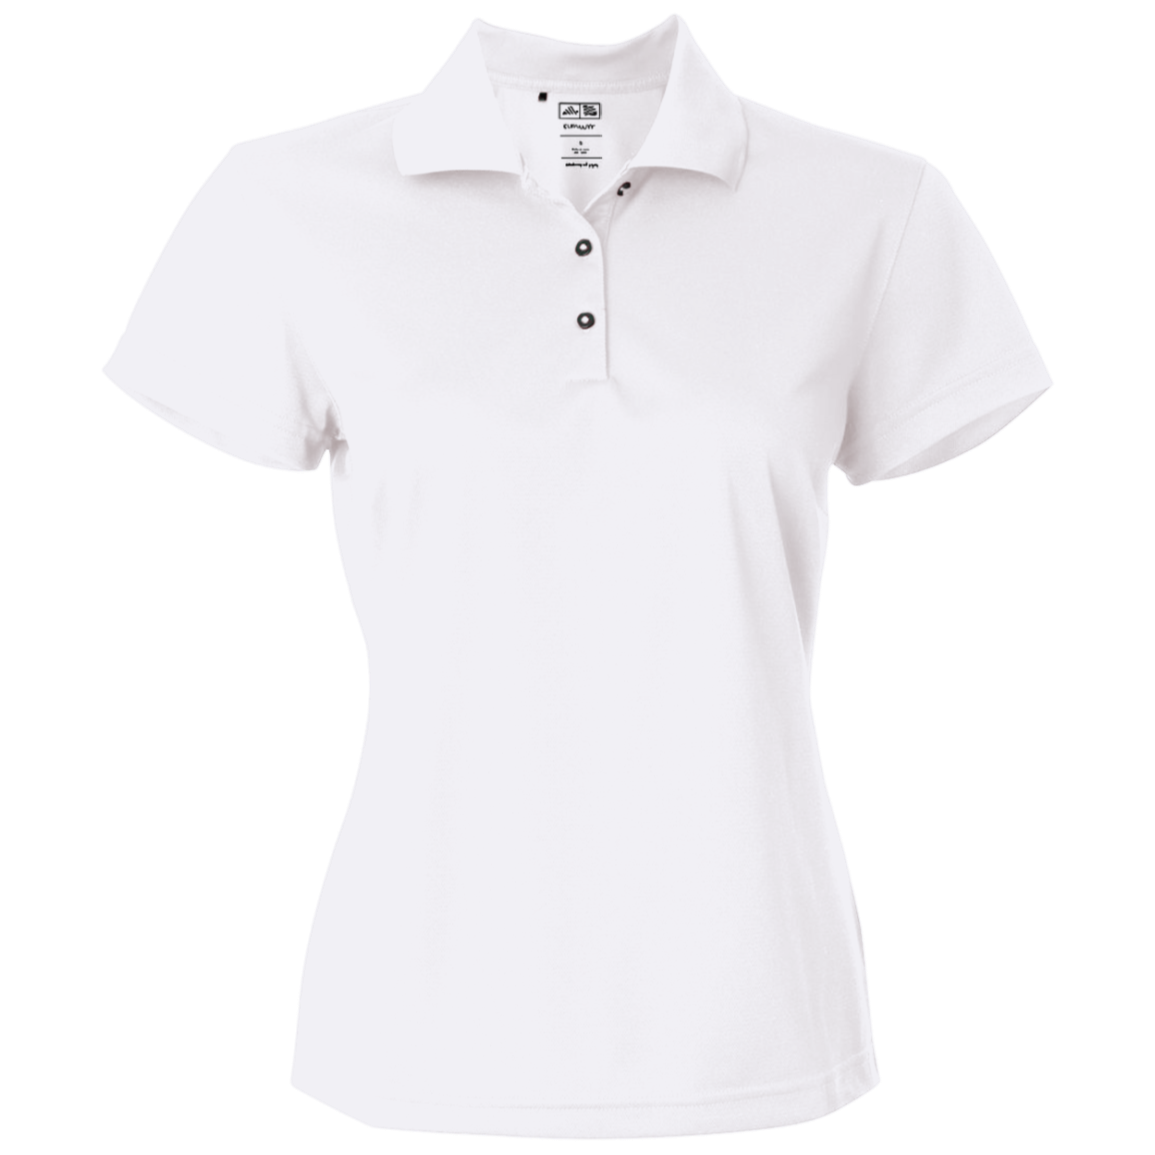 d5b71ec7 Michigan Adidas Golf Women's ClimaLite Basic Performance Pique Polo - Down  With Detroit Apparel Shop